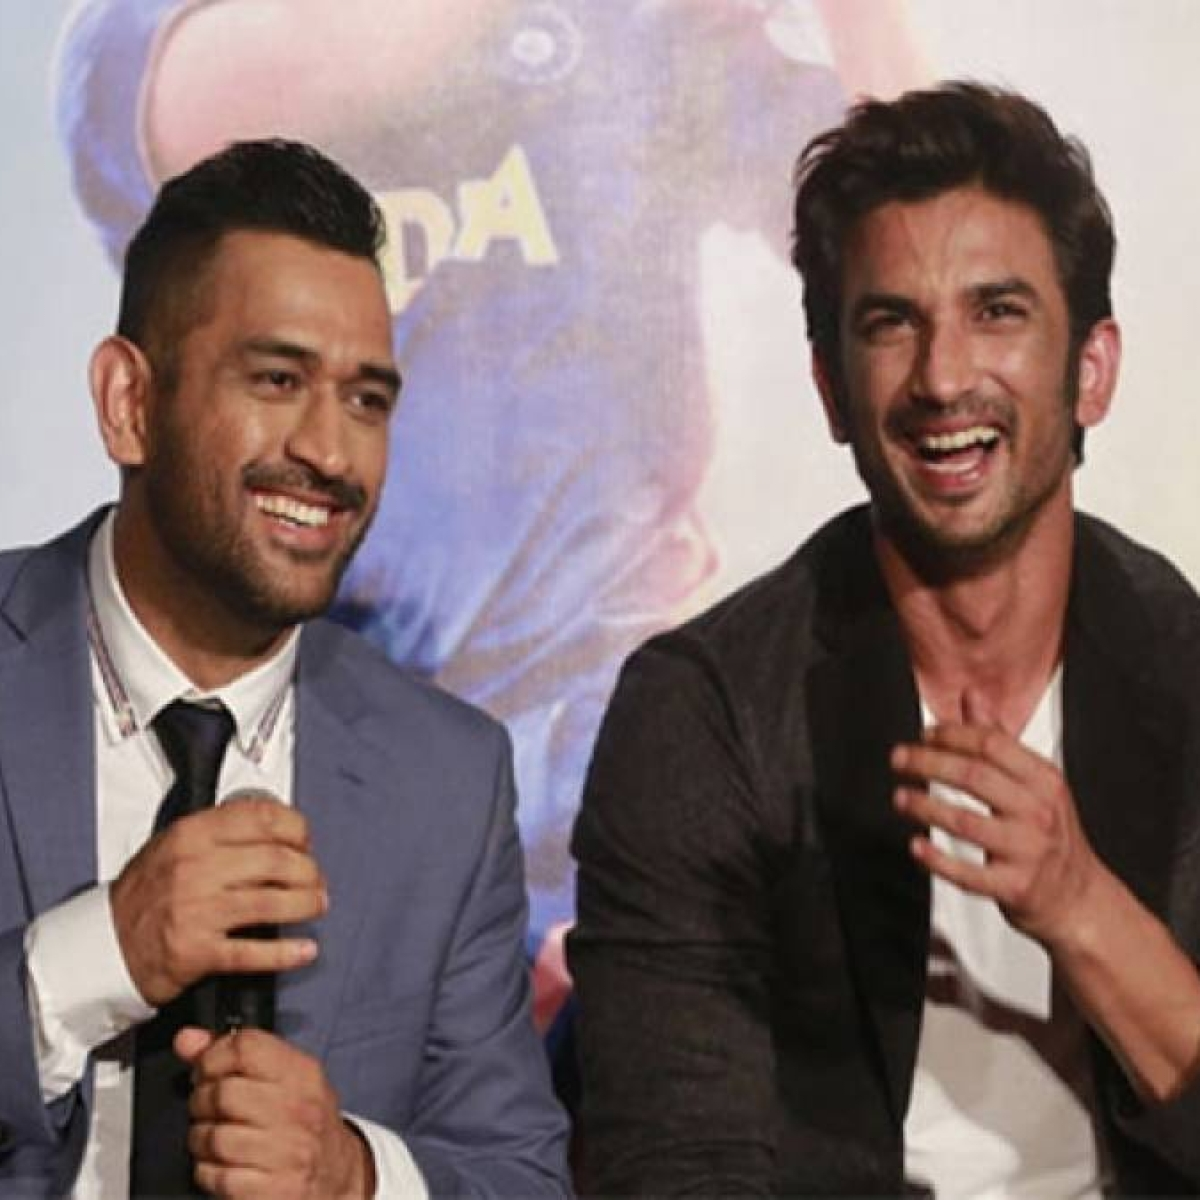 MS Dhoni 'very morose' after Sushant Singh Rajput's demise, reveals manager Arun Pandey